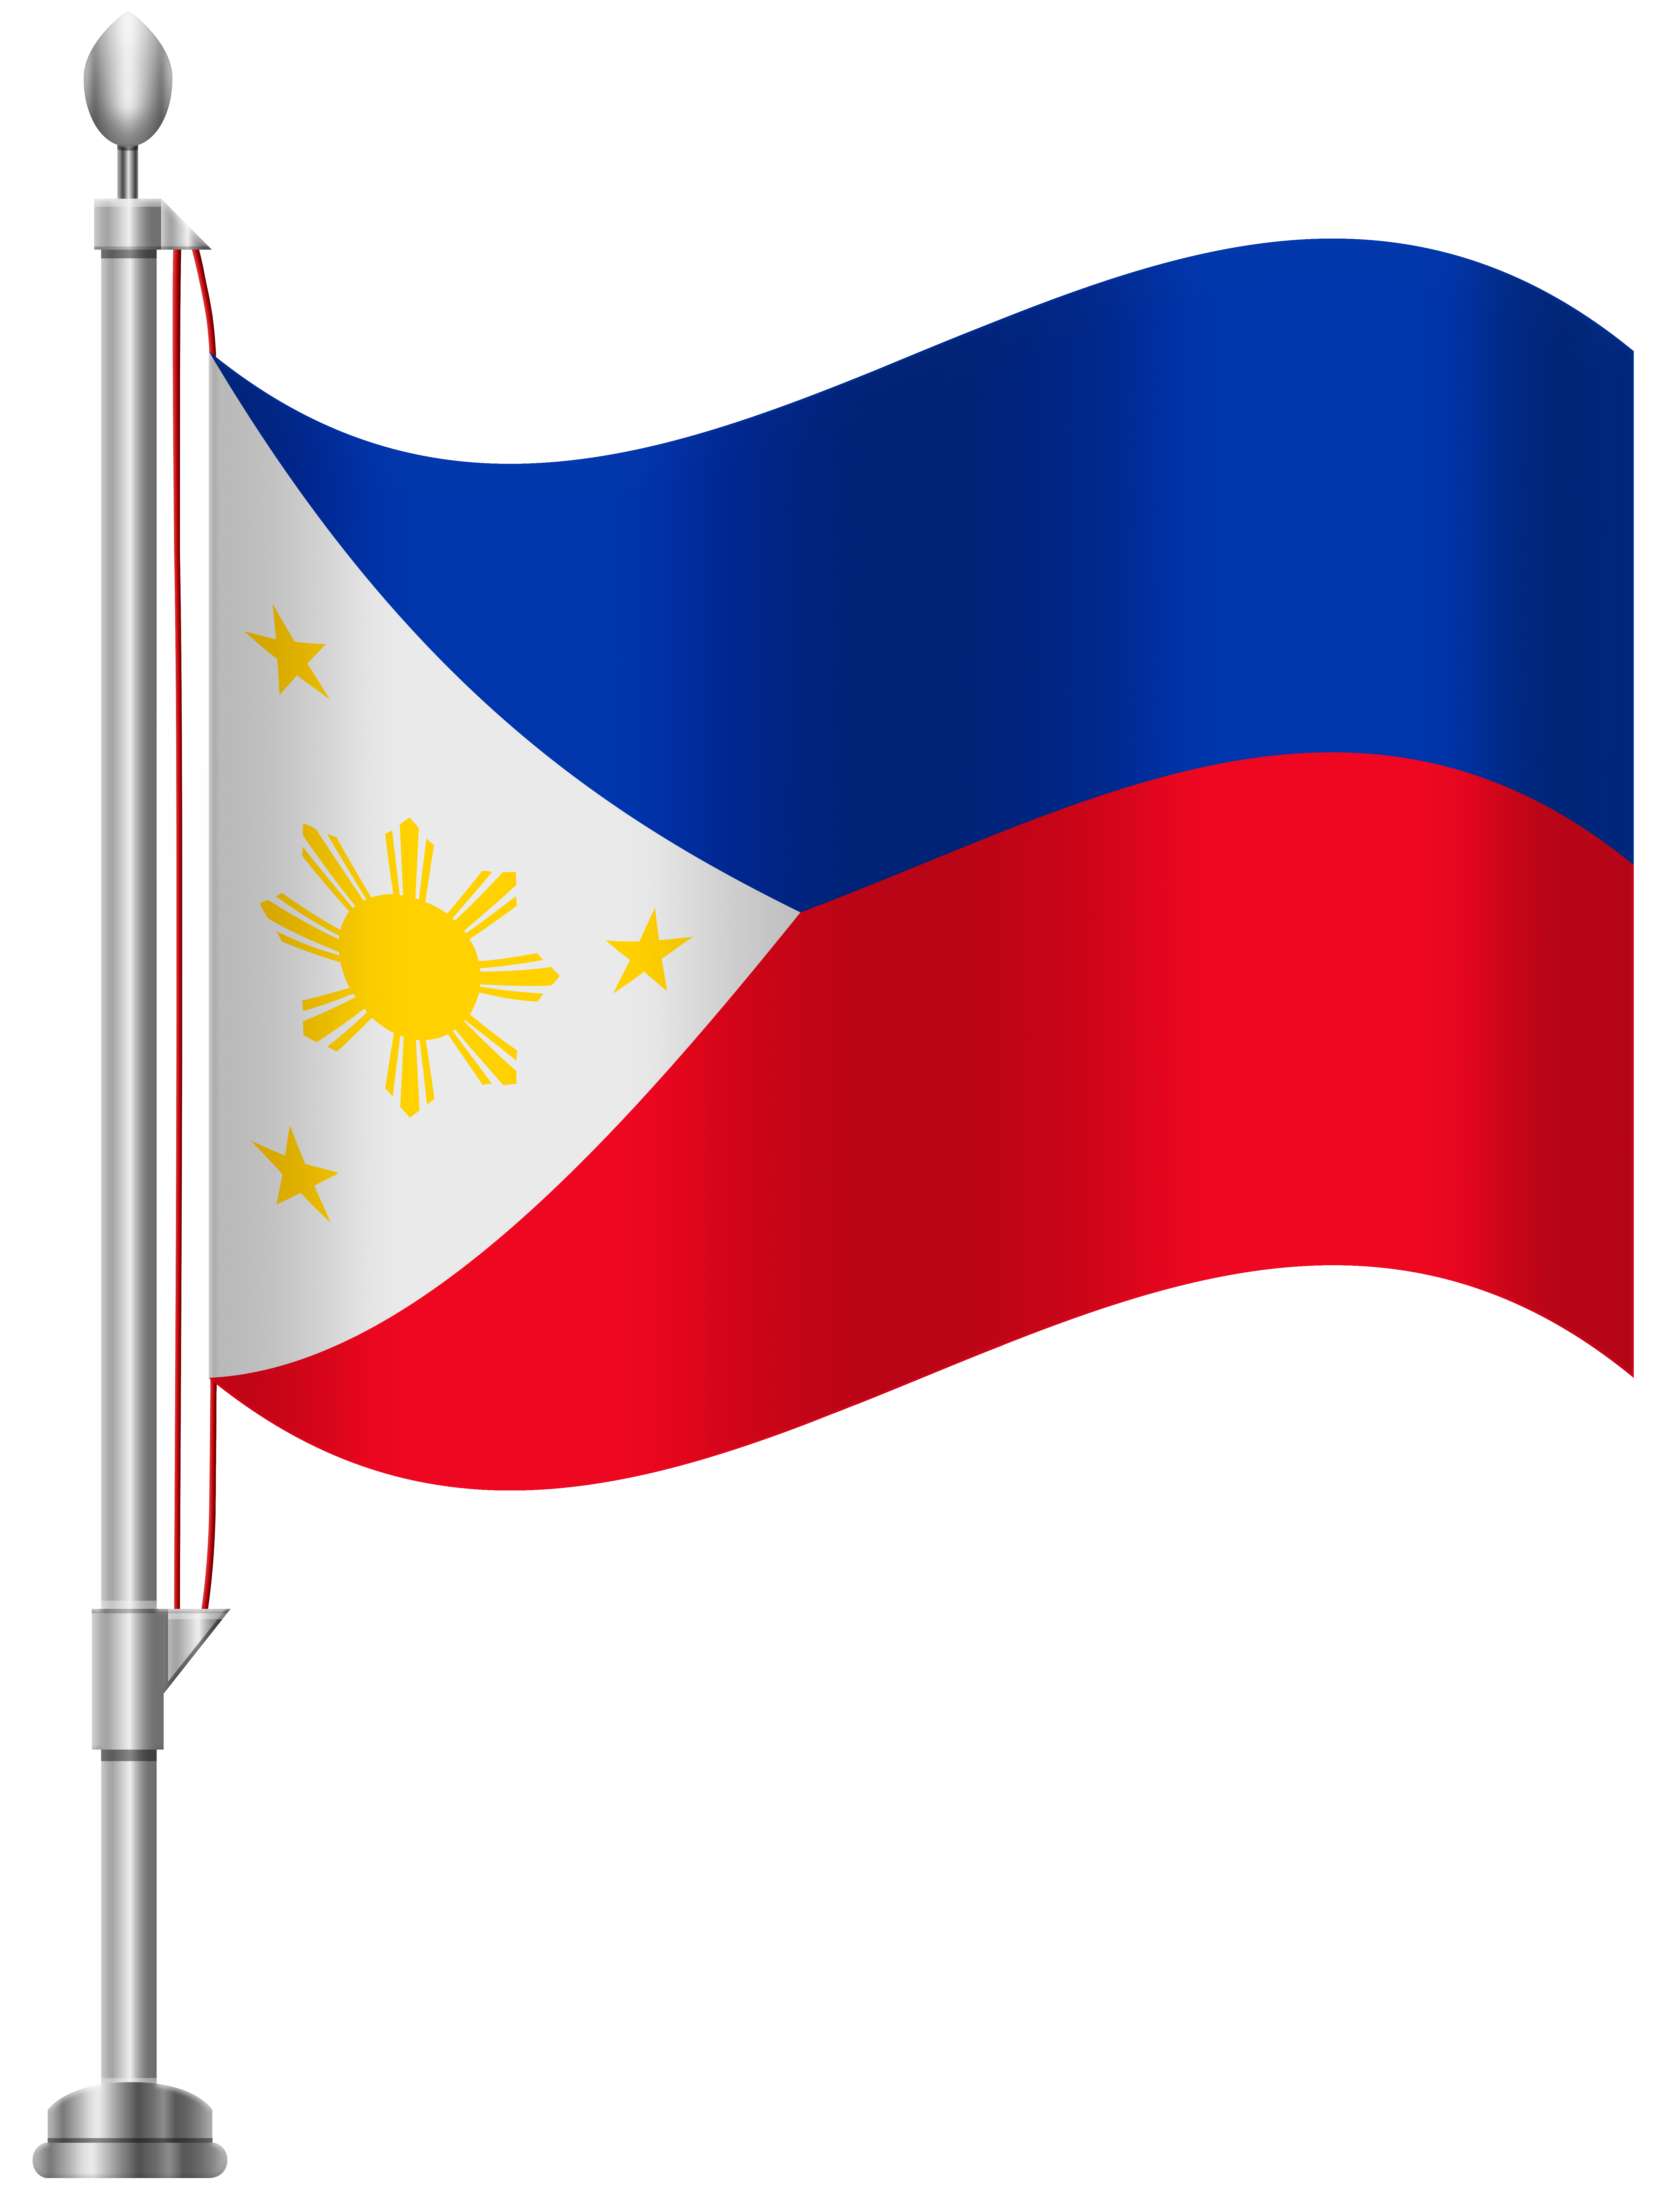 png royalty free library Philippines flag png clip. Flags clipart